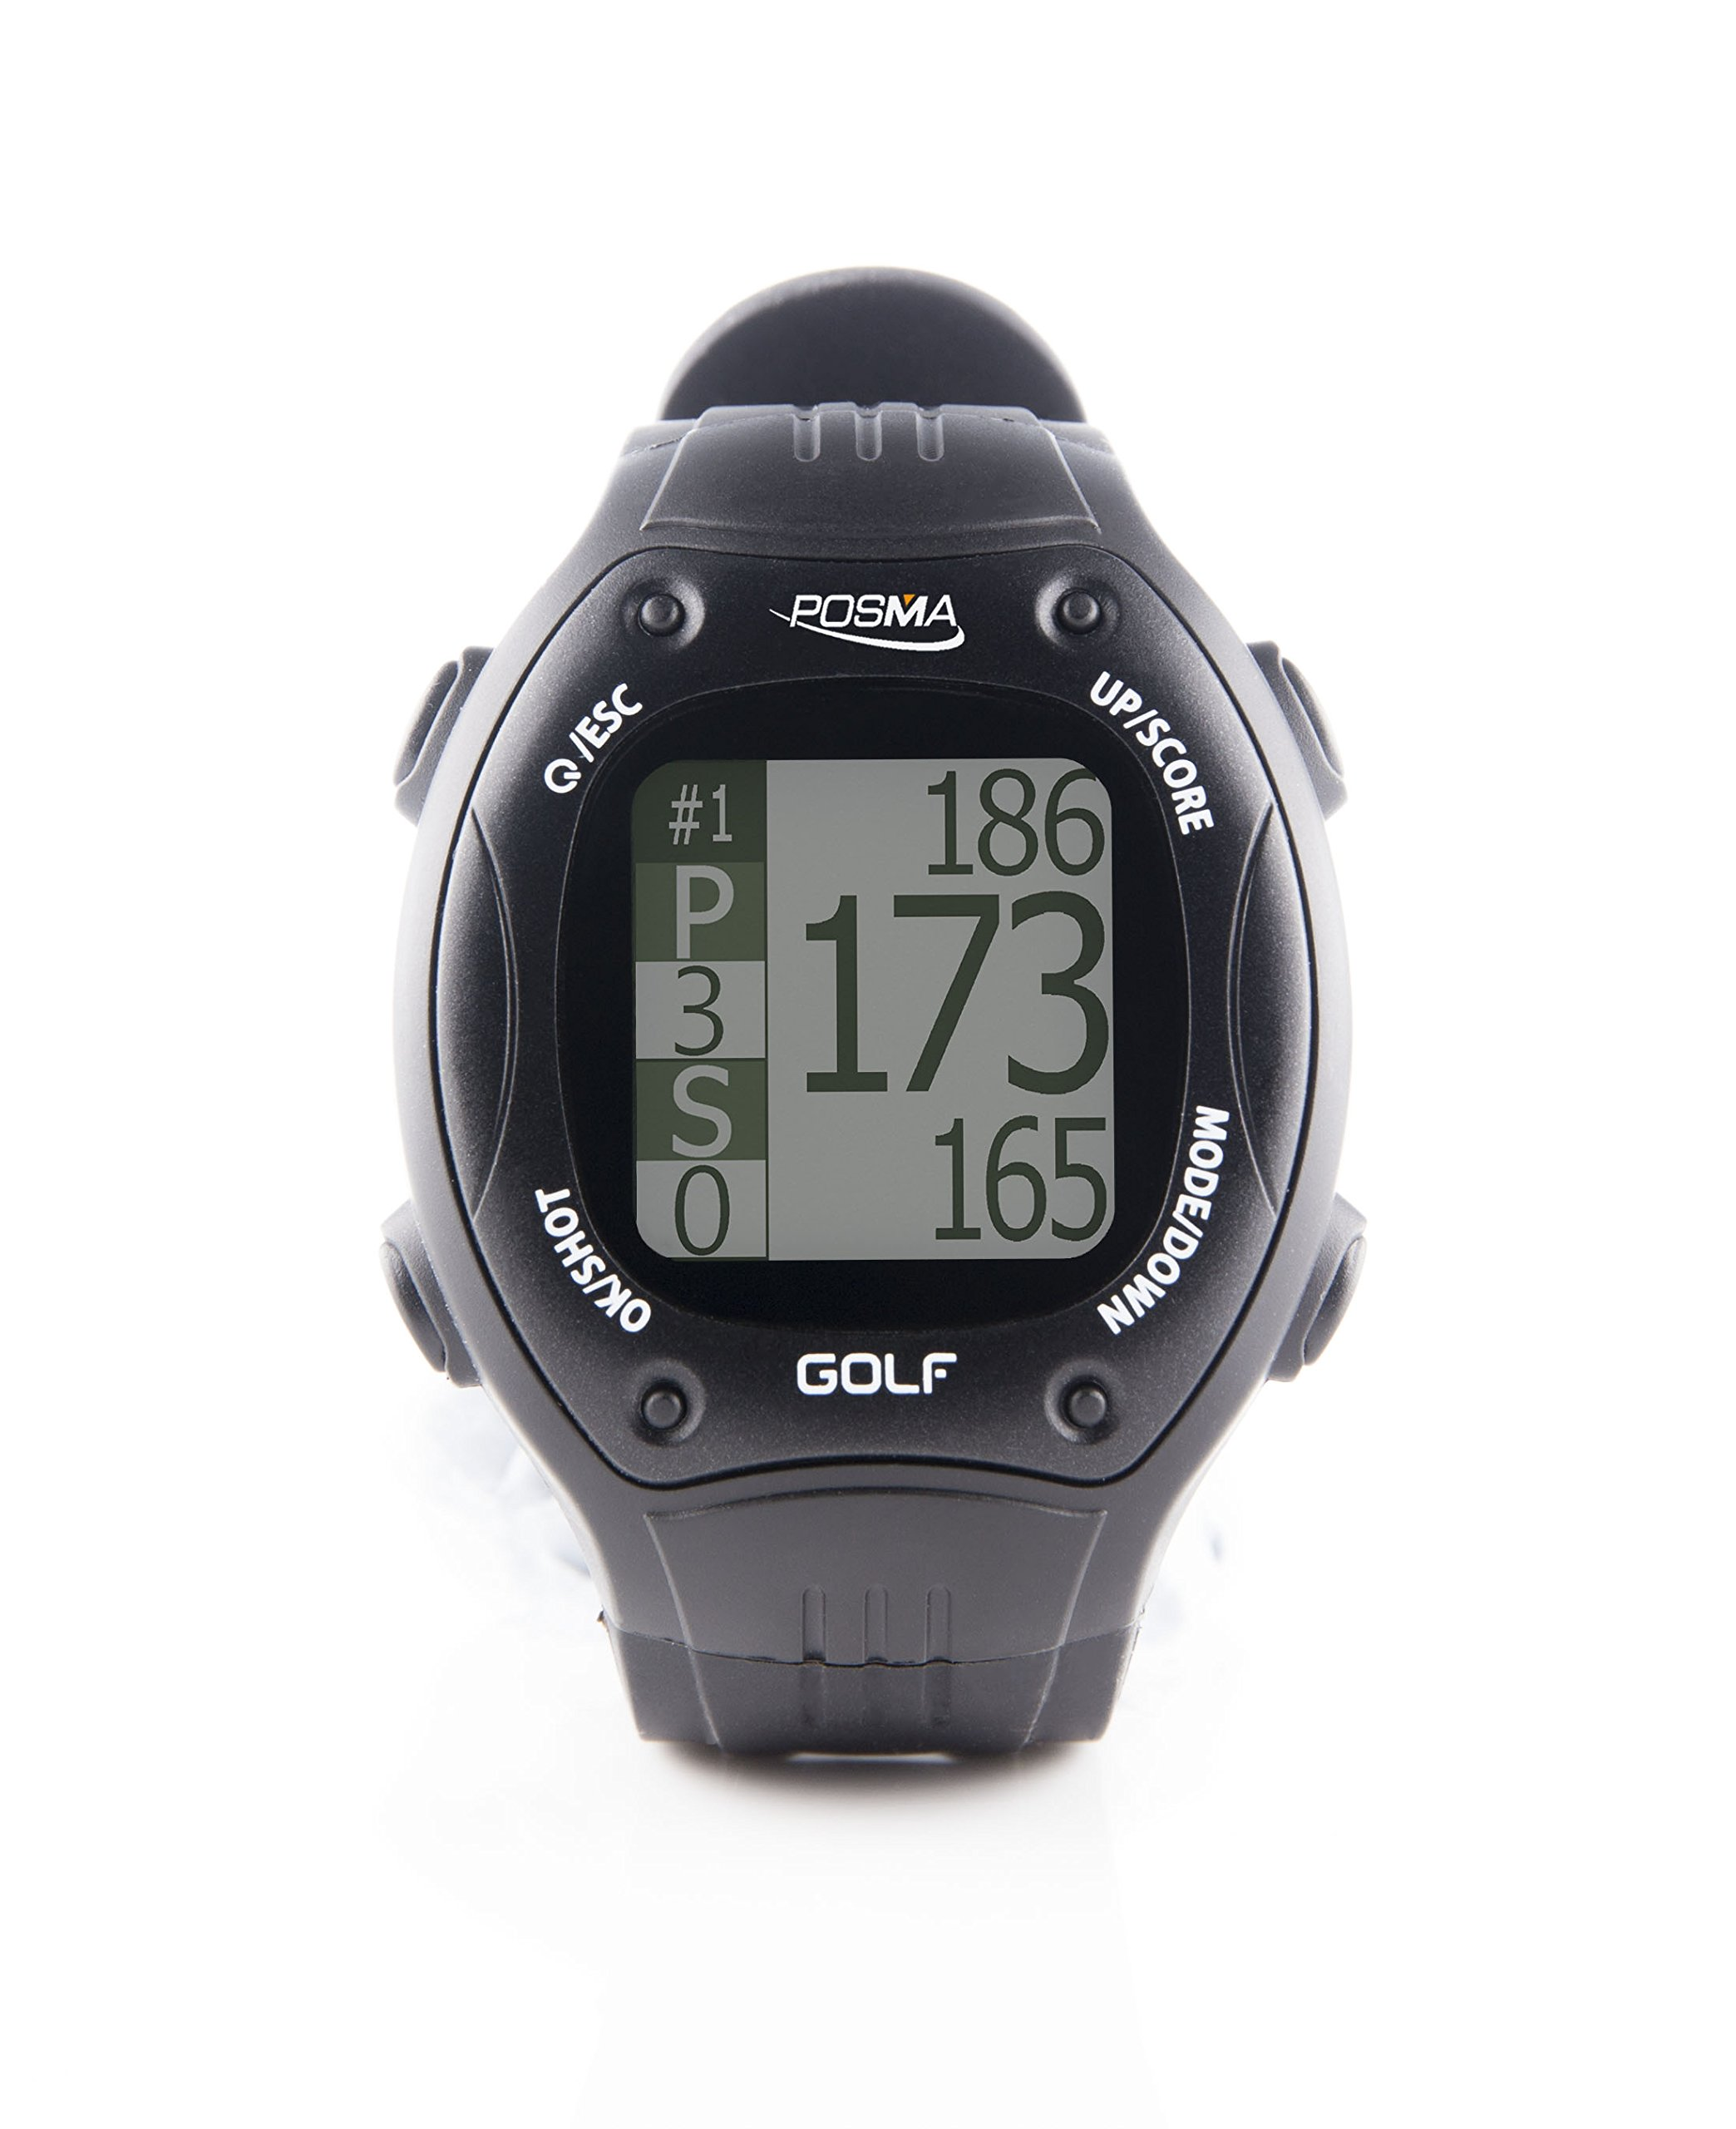 POSMA GT1+ Golf Trainer GPS Golf Watch Range Finder, Preloaded Golf Courses, no download no subscription, Black. Global courses incl. US, Canada, Europe, Australia, New Zealand, Asia